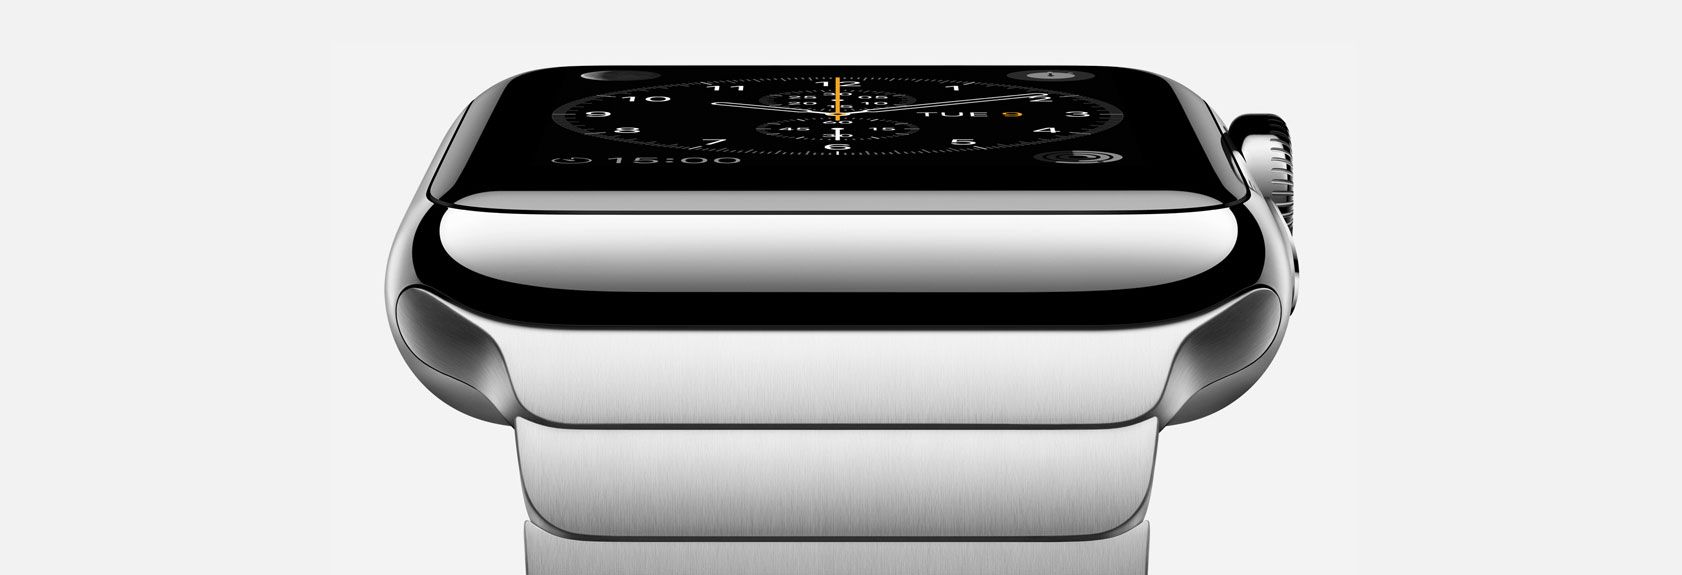 Apple is helping a select number of developers finish apps for the Apple Watch